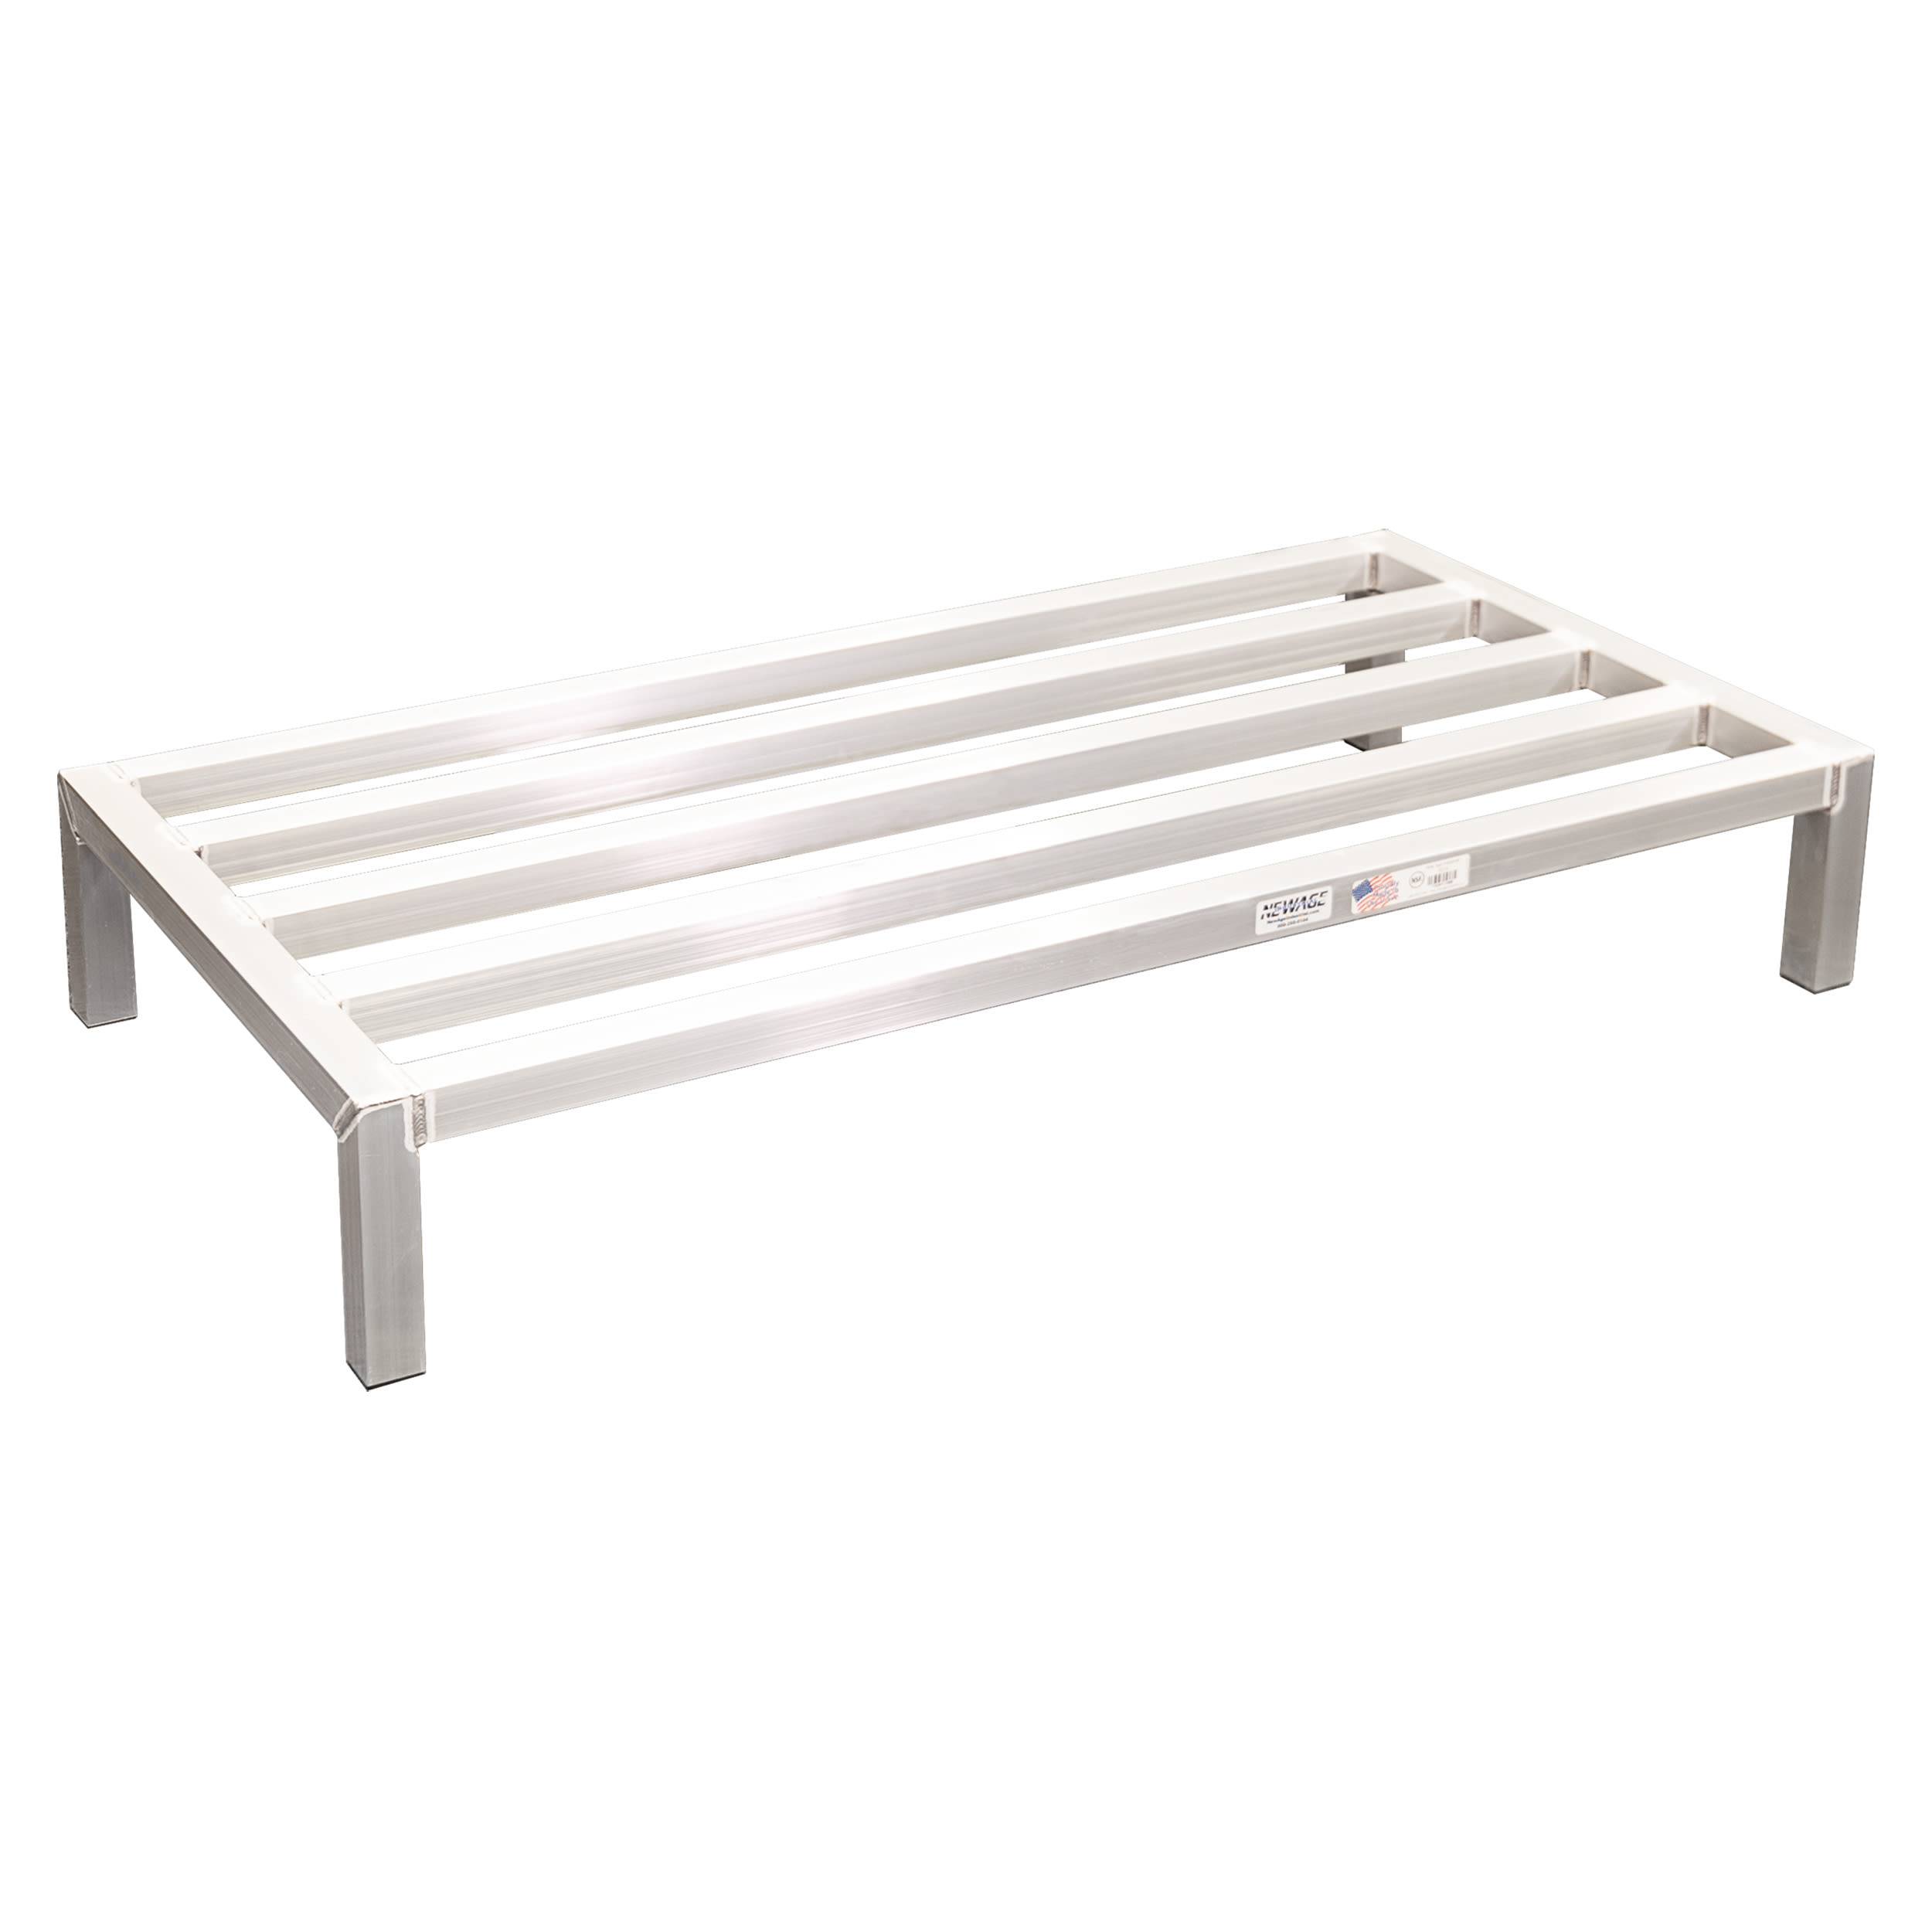 "New Age 6015 48"" Stationary Dunnage Rack w/ 2000 lb Capacity, Aluminum"